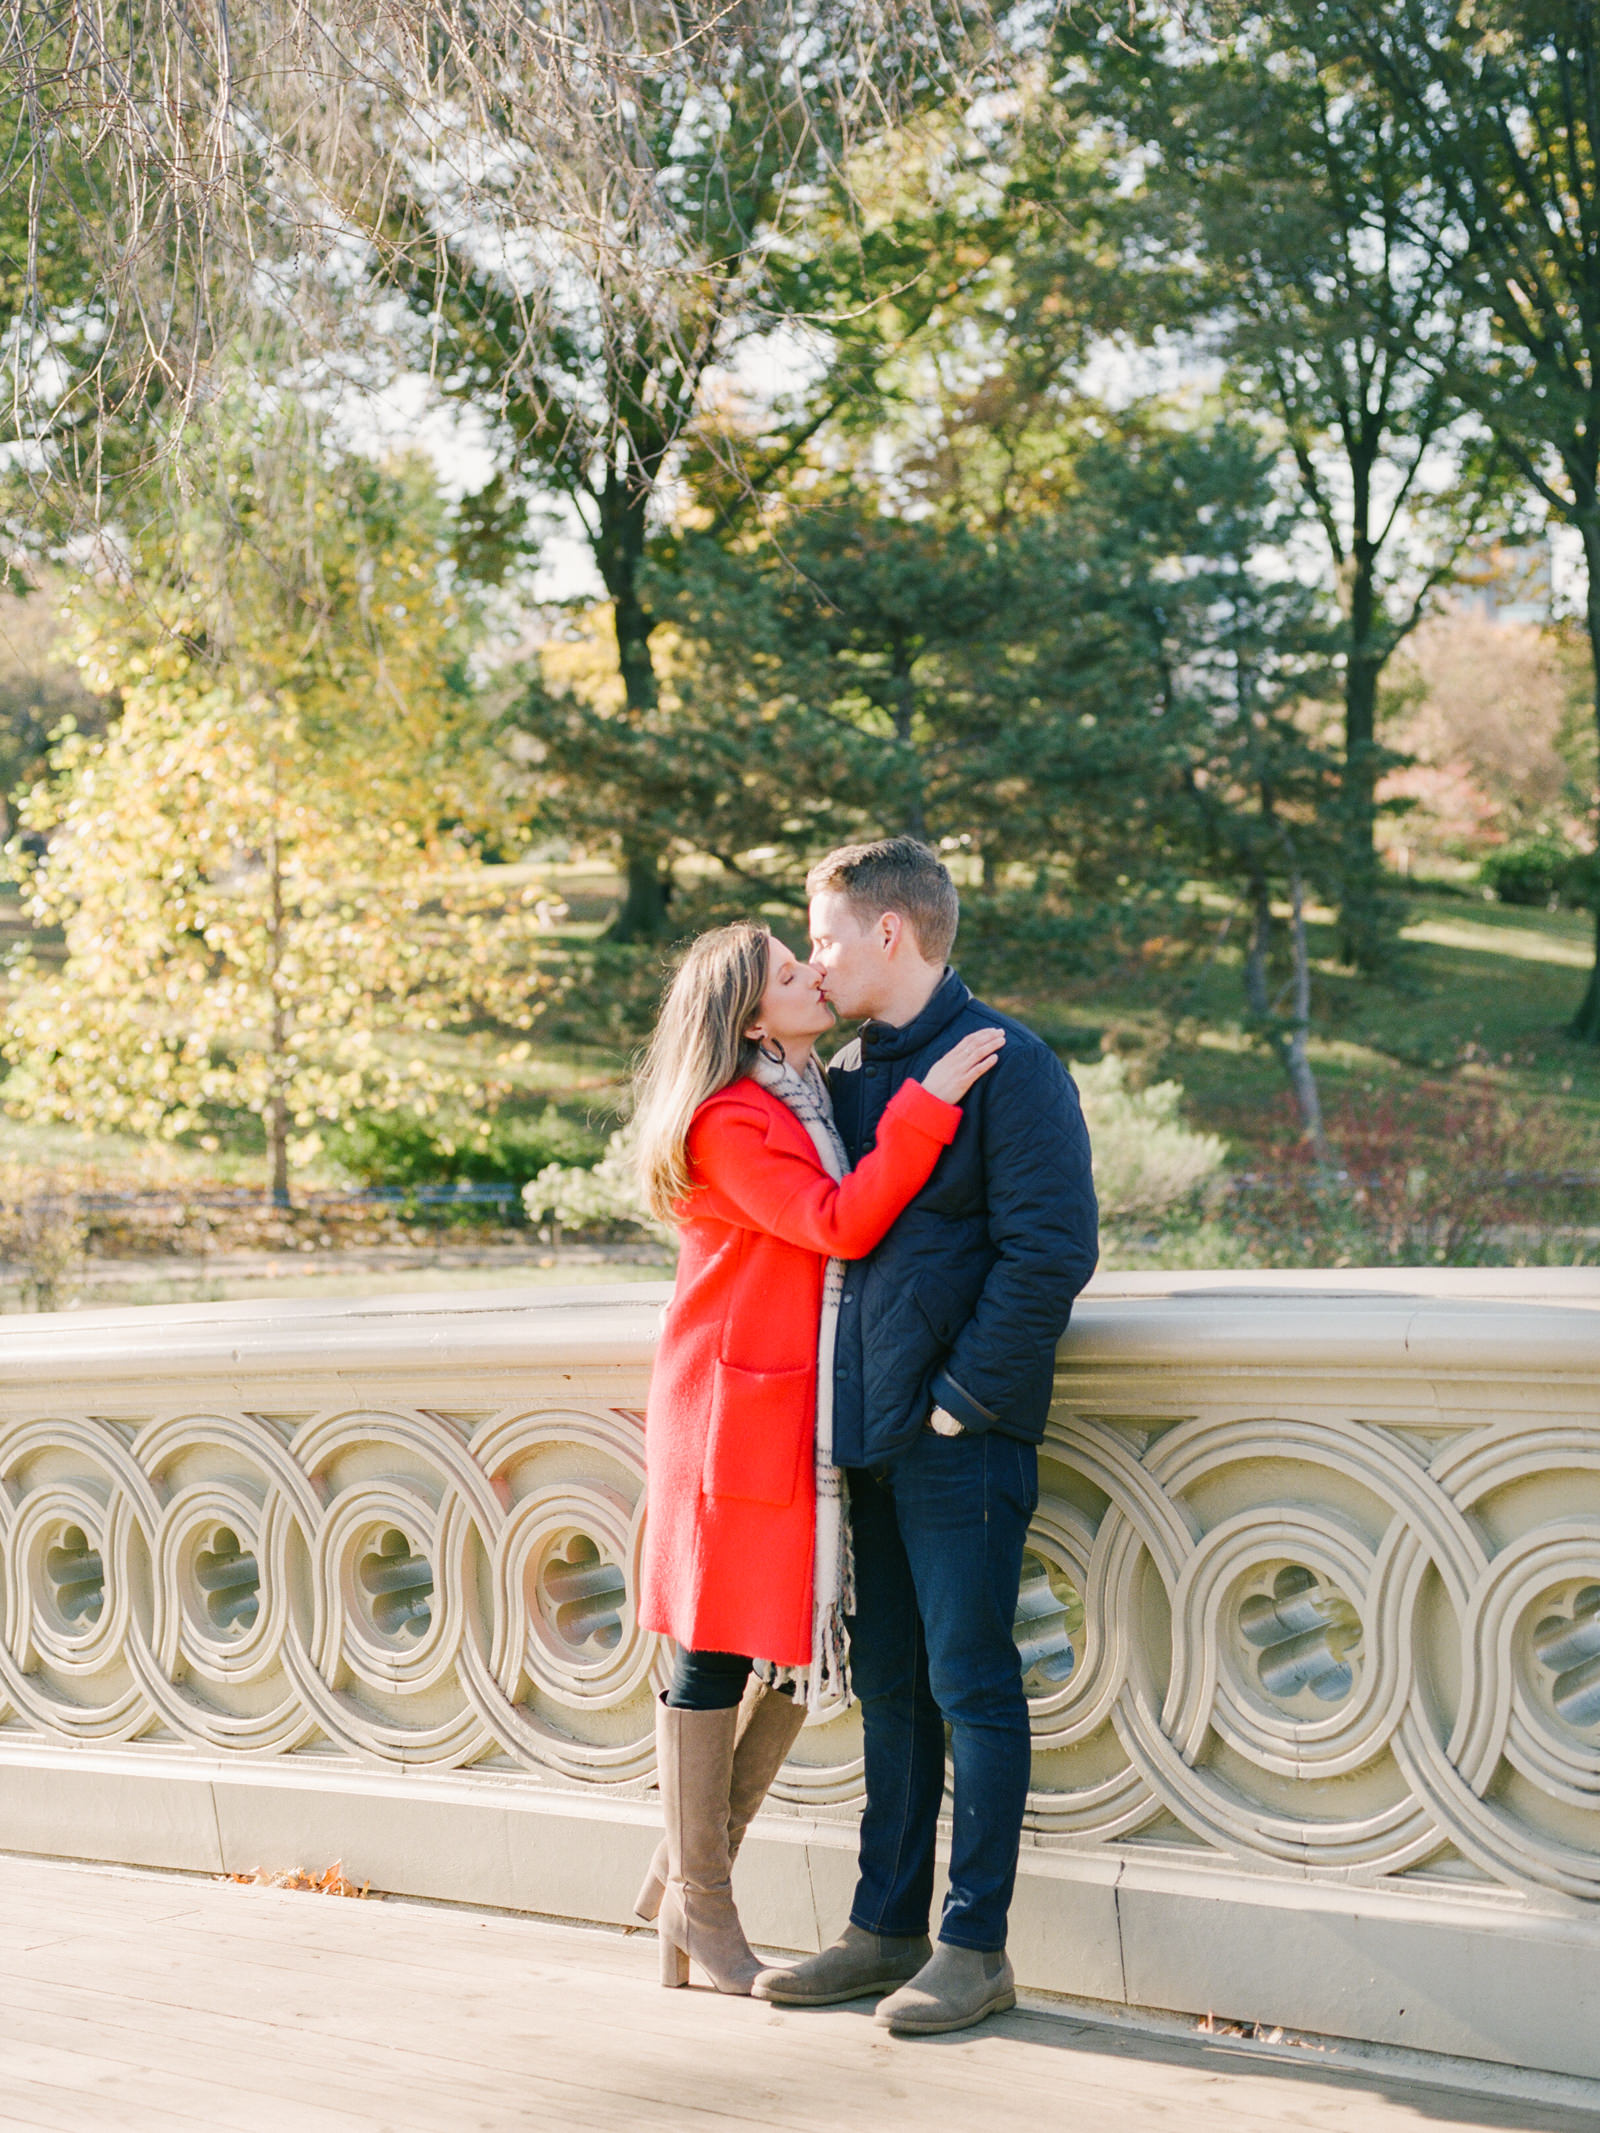 Central-park-fall-engagement-session-by Tanya Isaeva-46.jpg